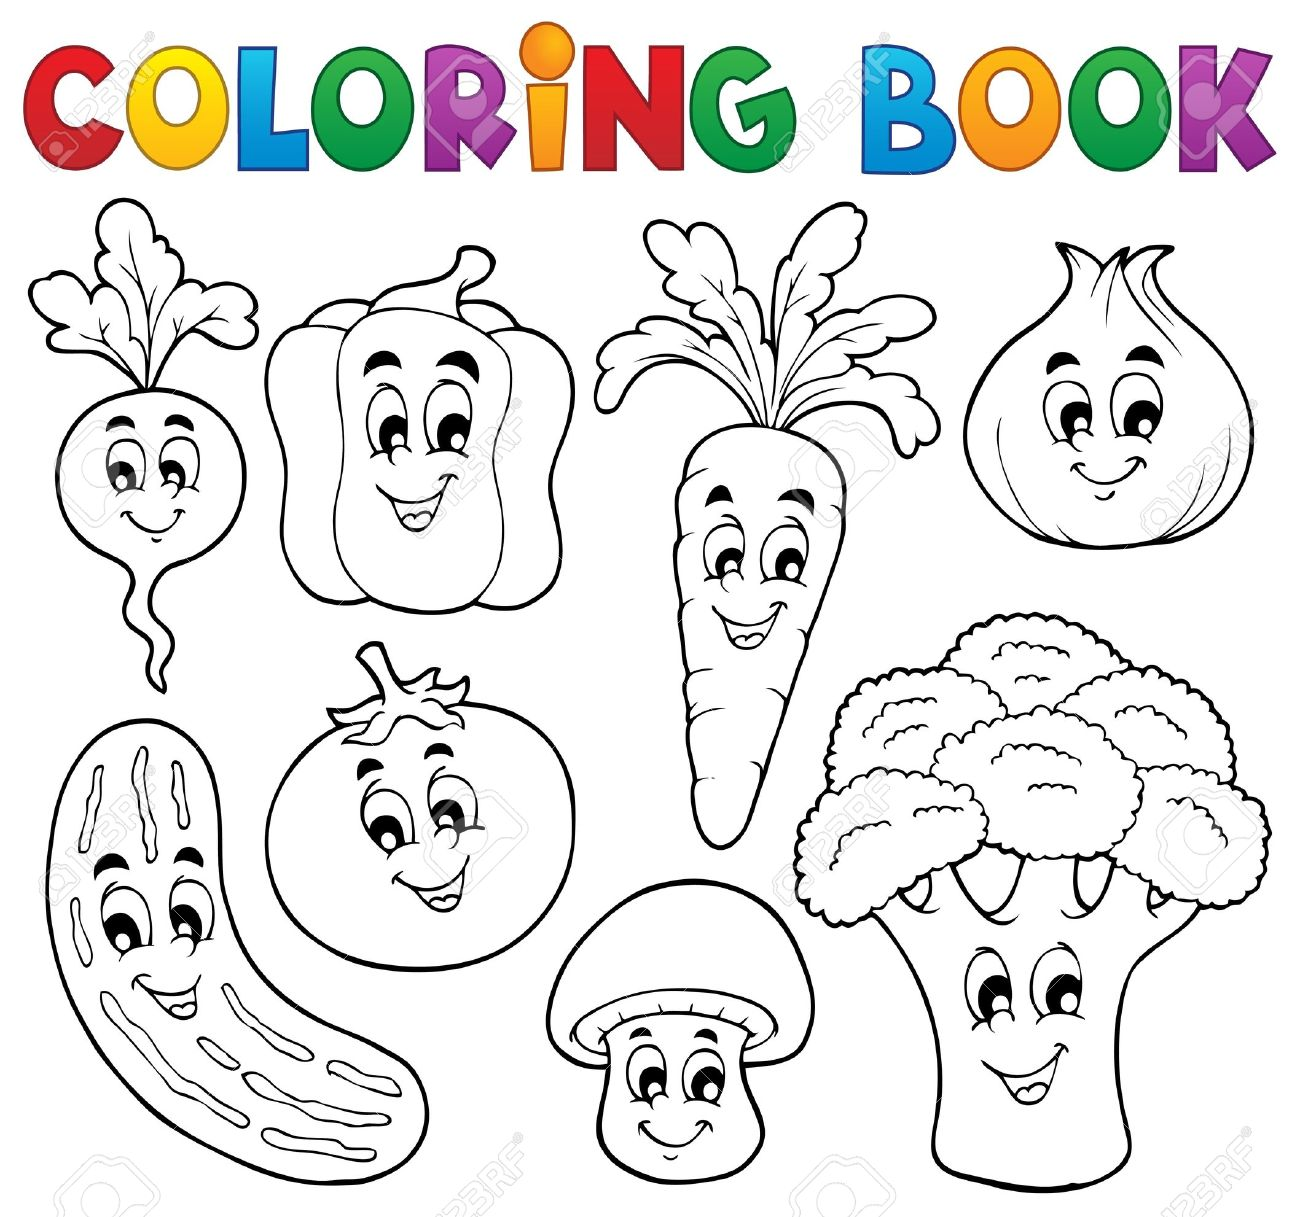 Coloring Book Vegetables Theme Royalty Free Cliparts, Vectors, And ...